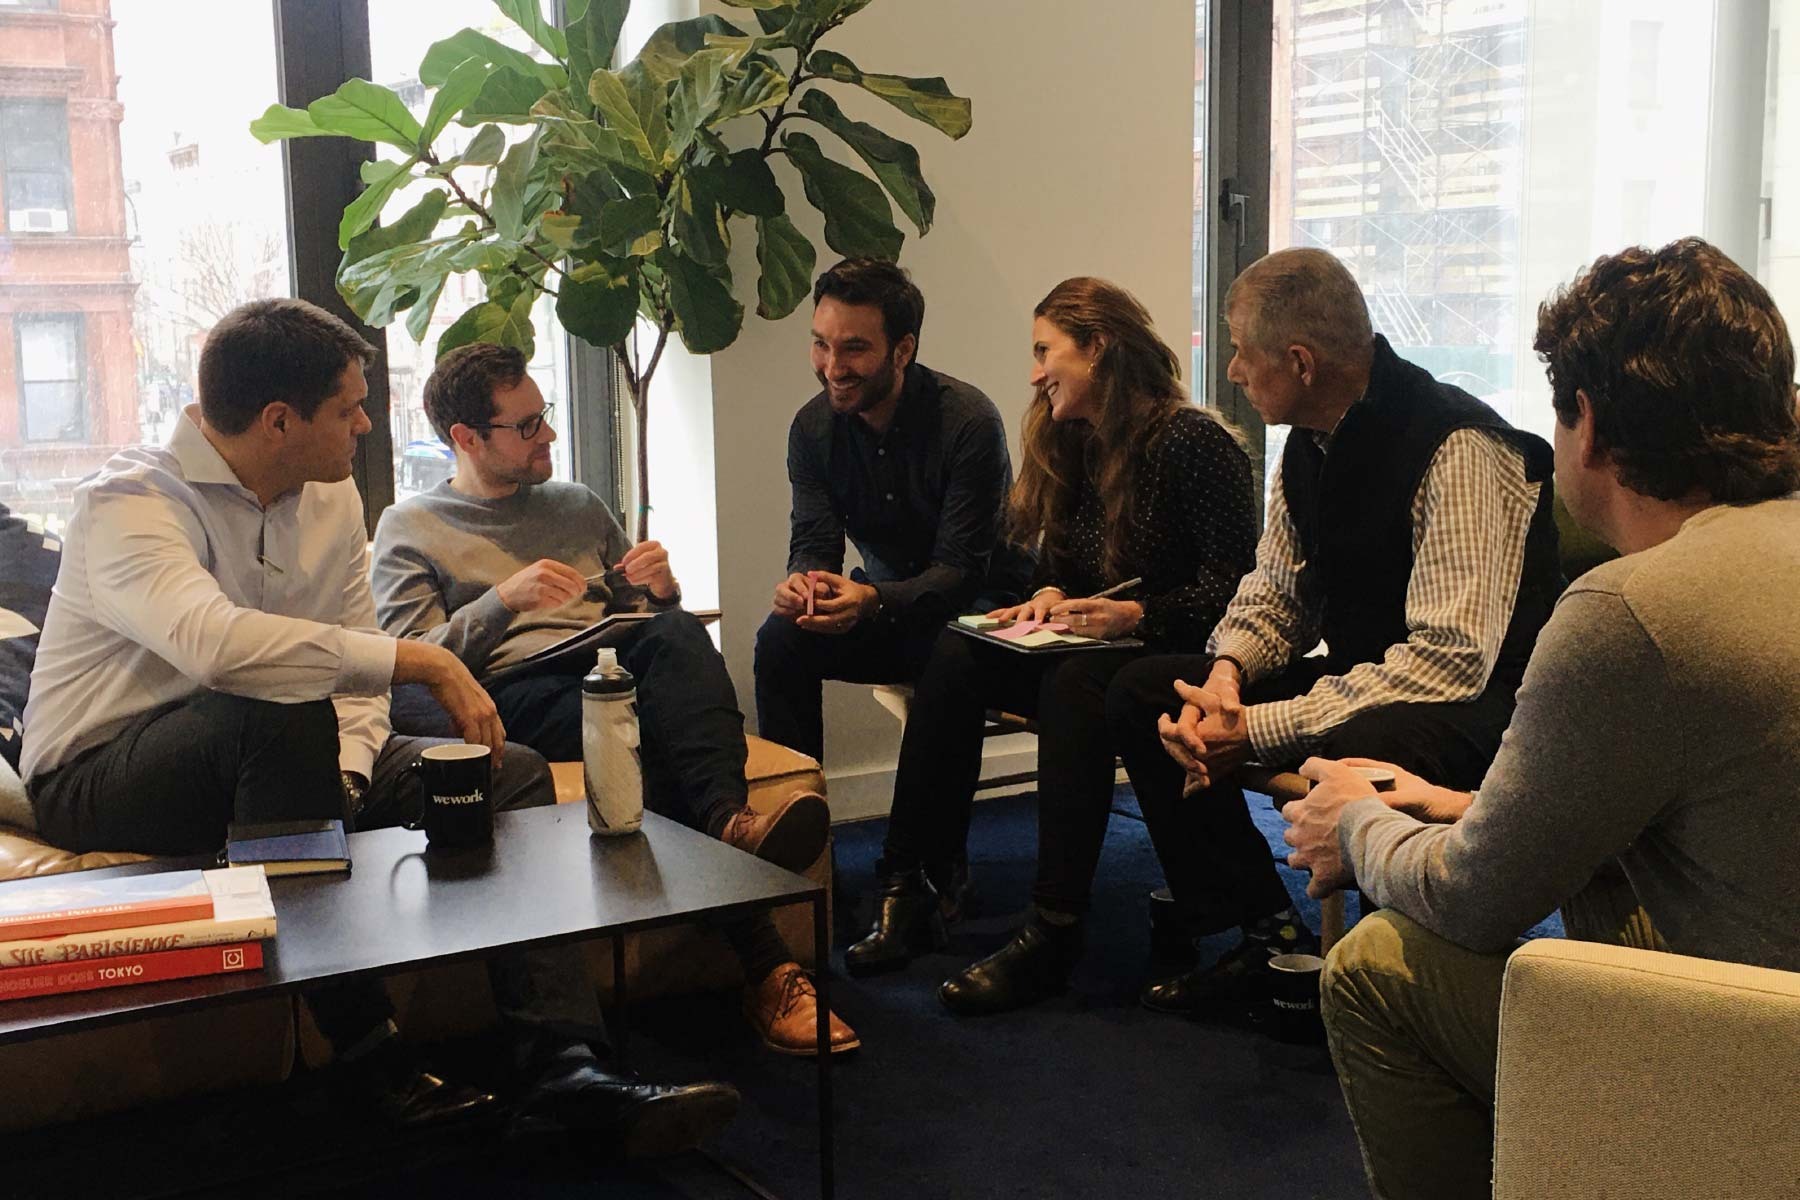 The Deallus Leadership team gathered in NYC to spend 2 days assessing our goals for the year and collaborating globally to create some exciting plans on how we work together to achieve them.